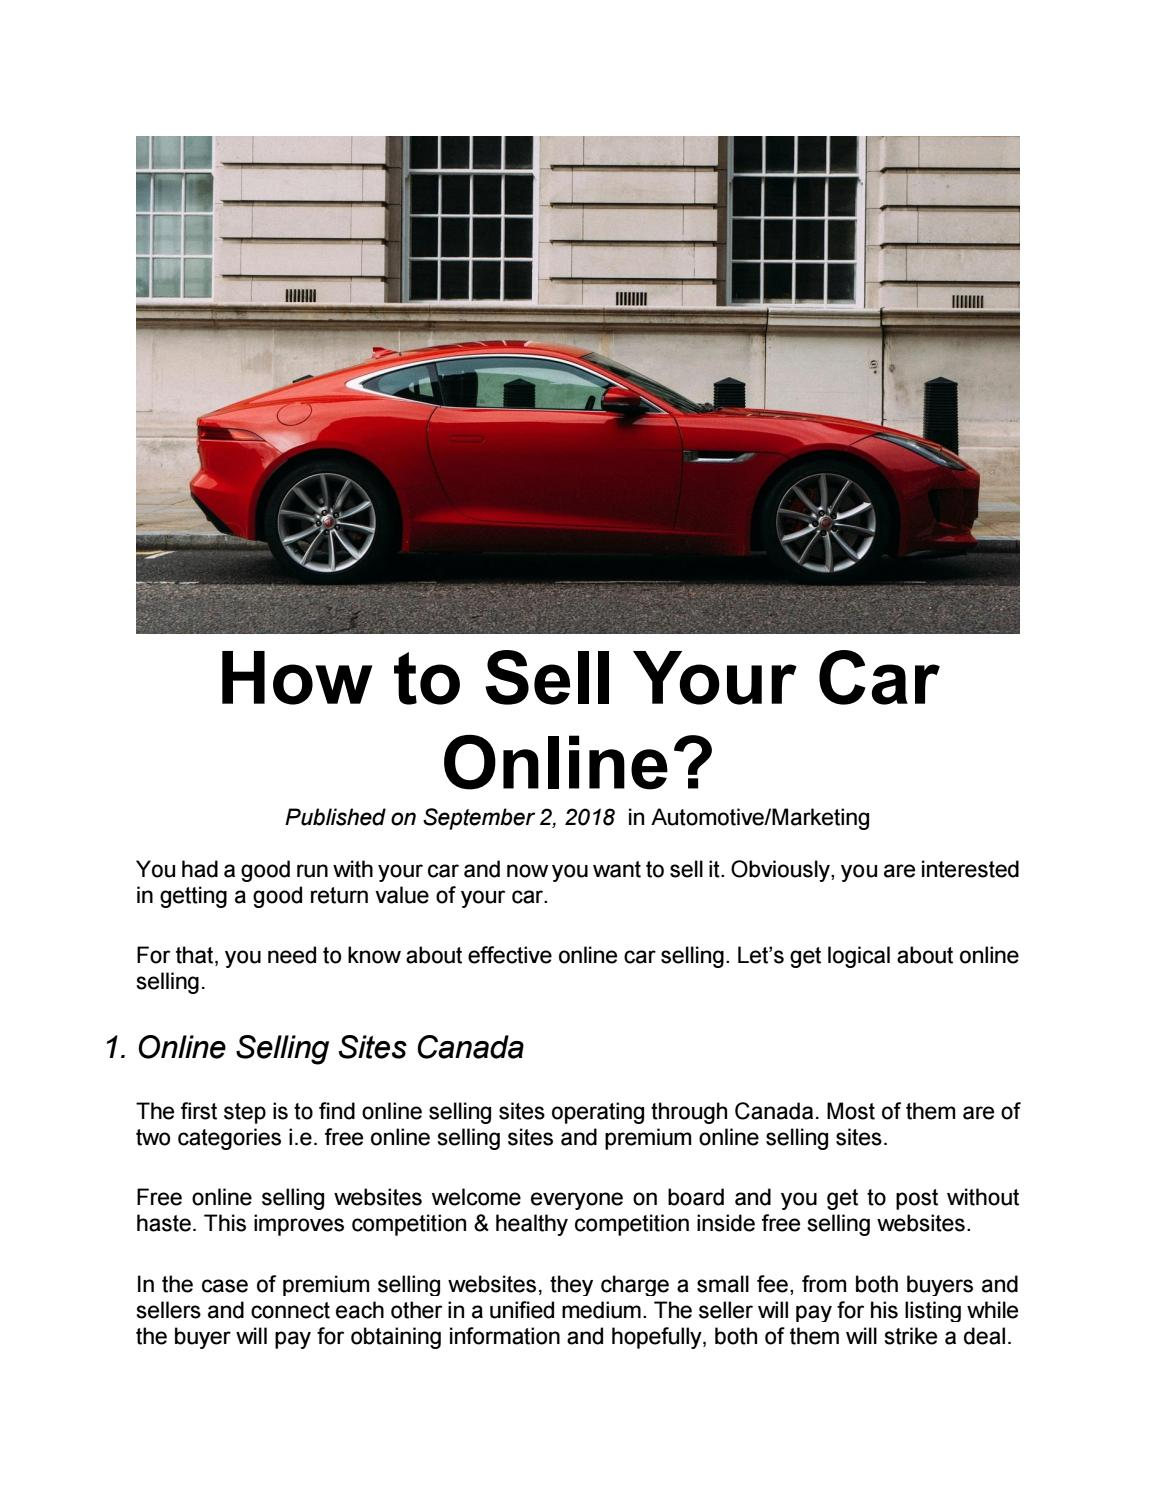 How to Sell Your Car Online? by MarketSpell - issuu